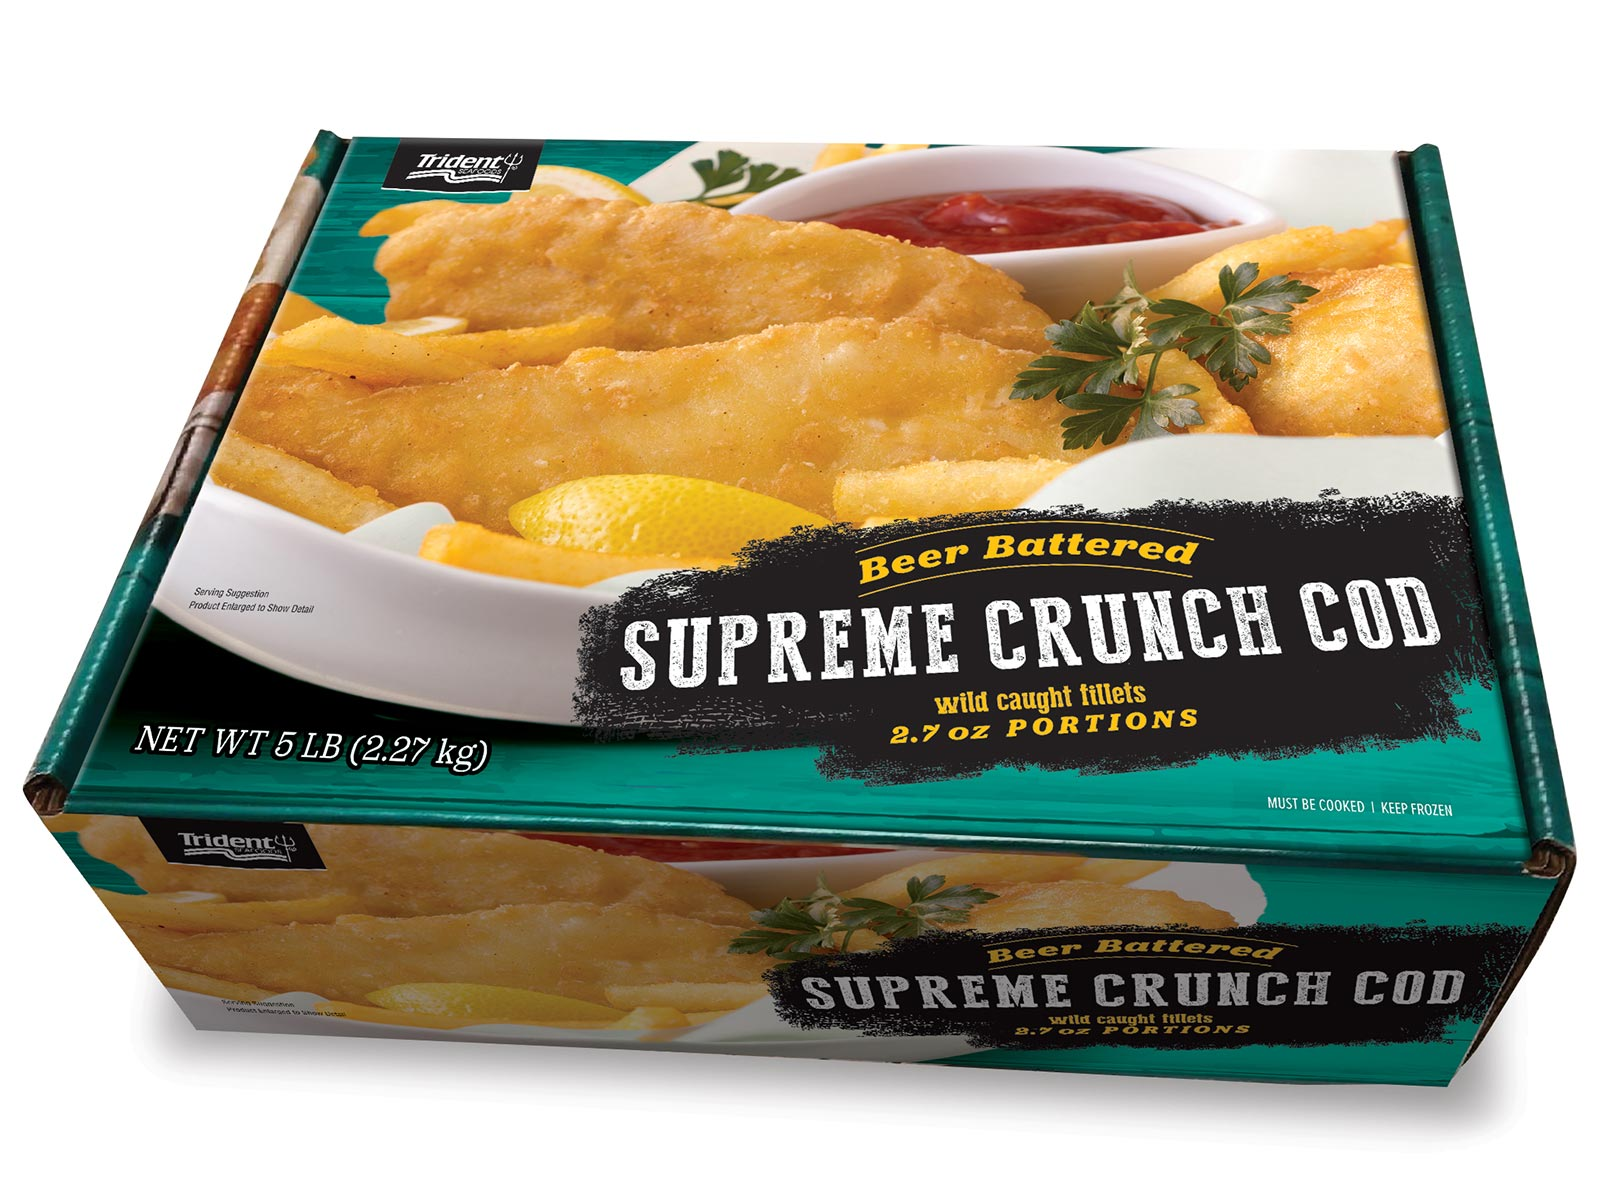 Beer Battered Supreme Crunch Cod 2.7 oz (1/5 lb) 423078